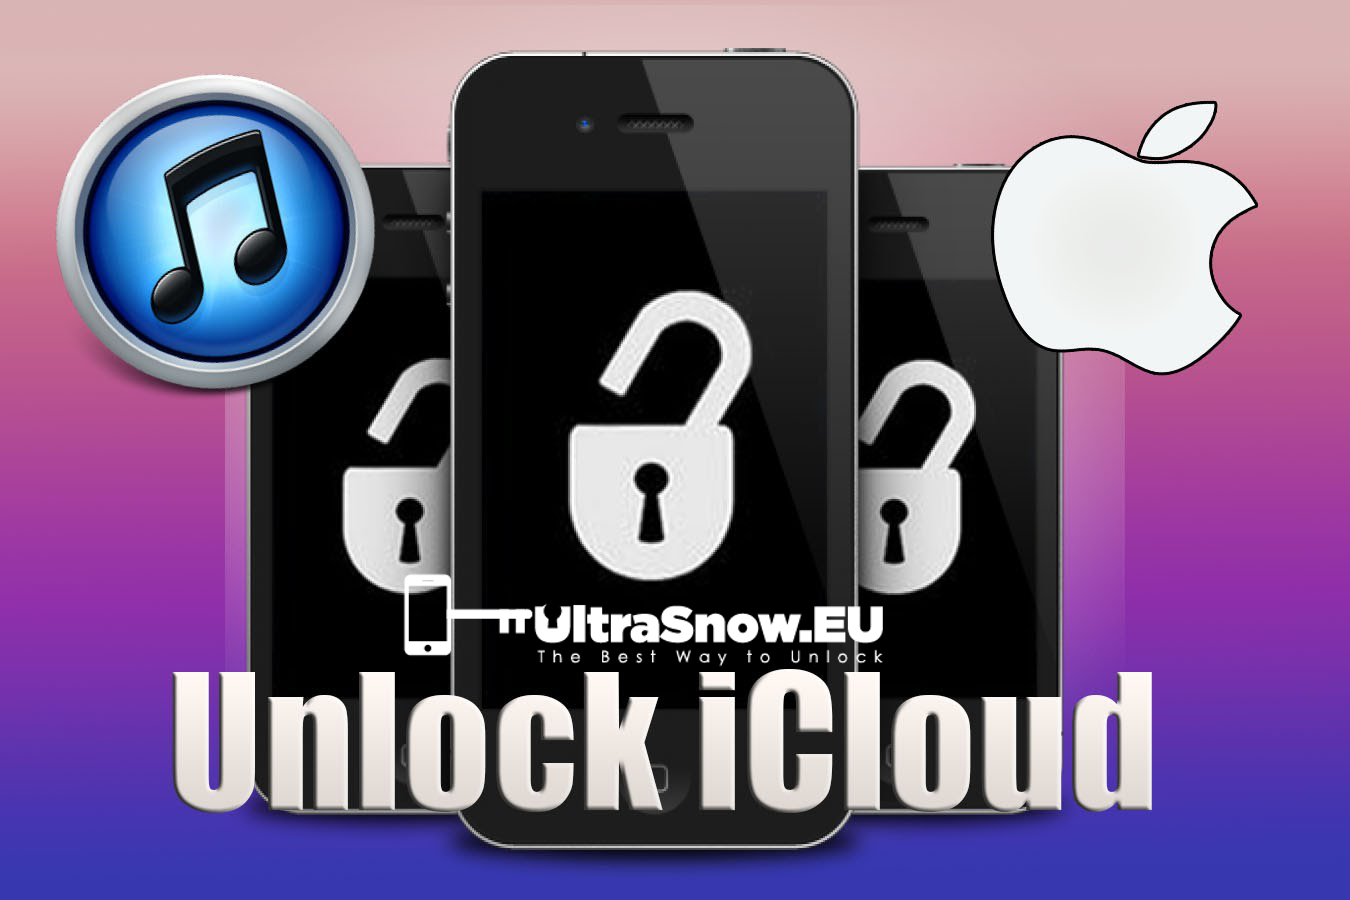 How to Unlock iCloud using UDID & IMEI number of your iPhone